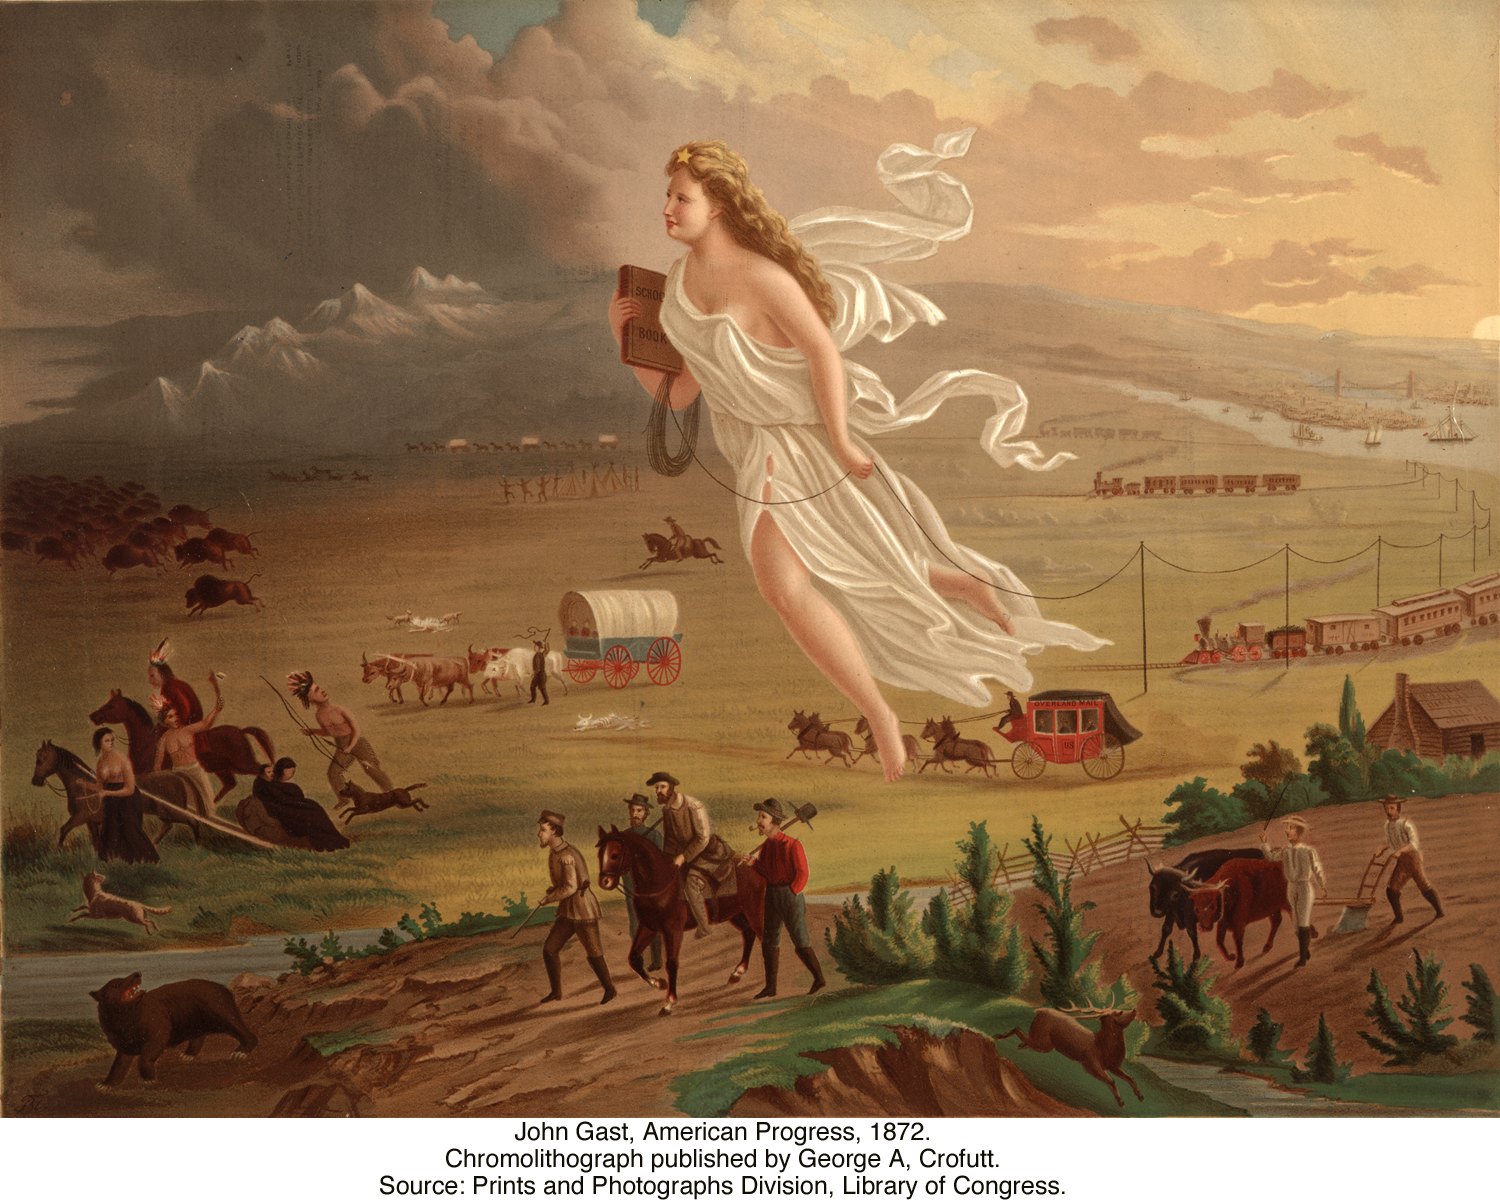 an analysis of the idea of manifest destiny in john gasts painting american progress The american progress, painted by john gast in 1872, is a representation of the manifest destiny the manifest destiny was the idea ideas the painting.